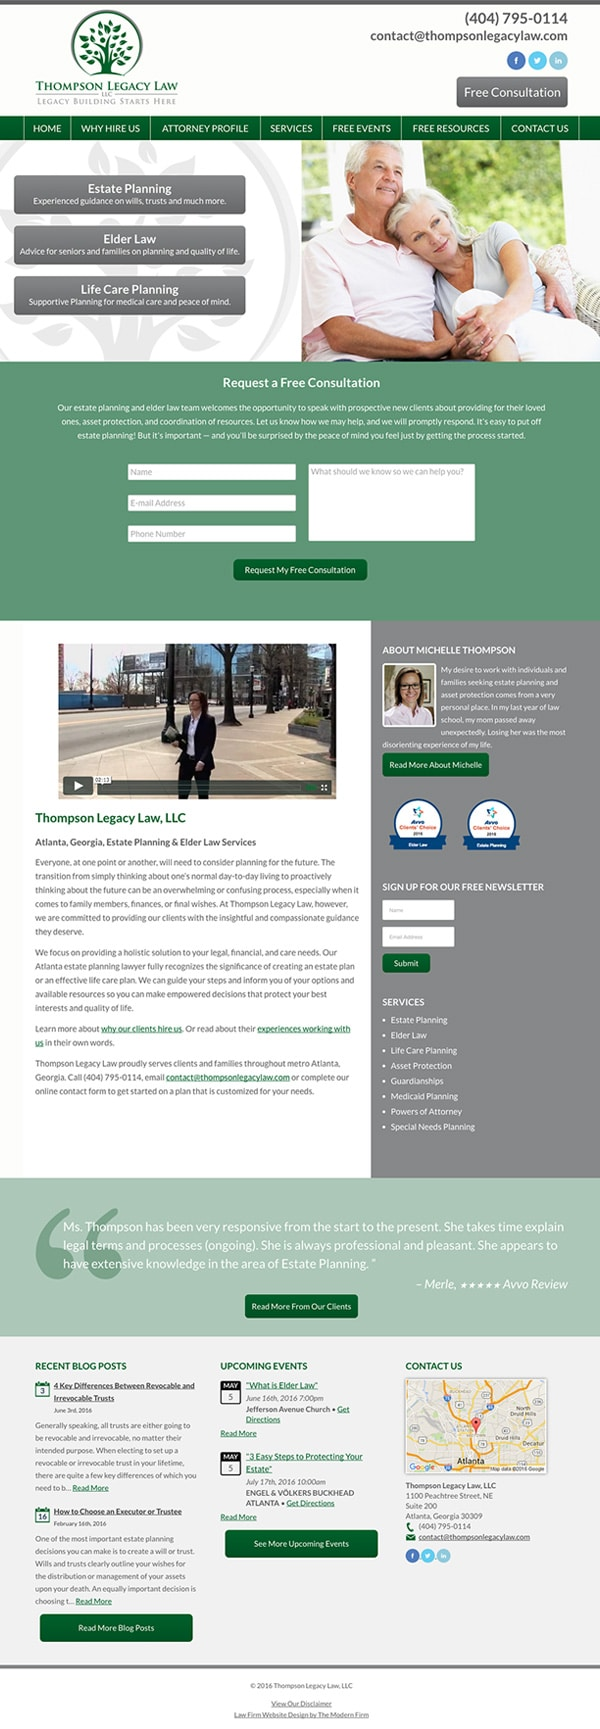 Law Firm Website Design for Thompson Legacy Law, LLC